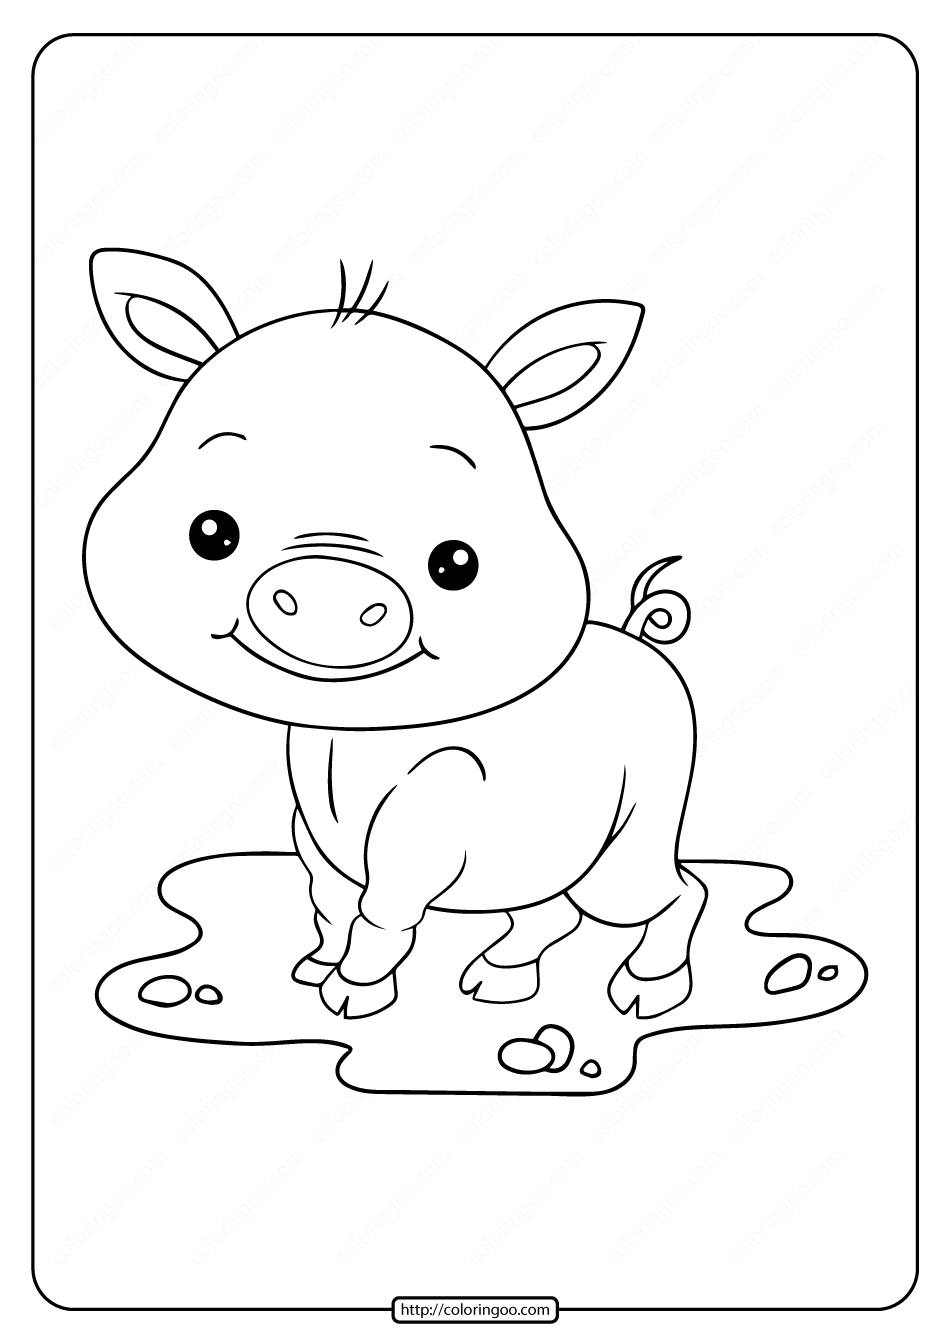 pig pictures to print printable baby cute pig coloring pages to pictures pig print